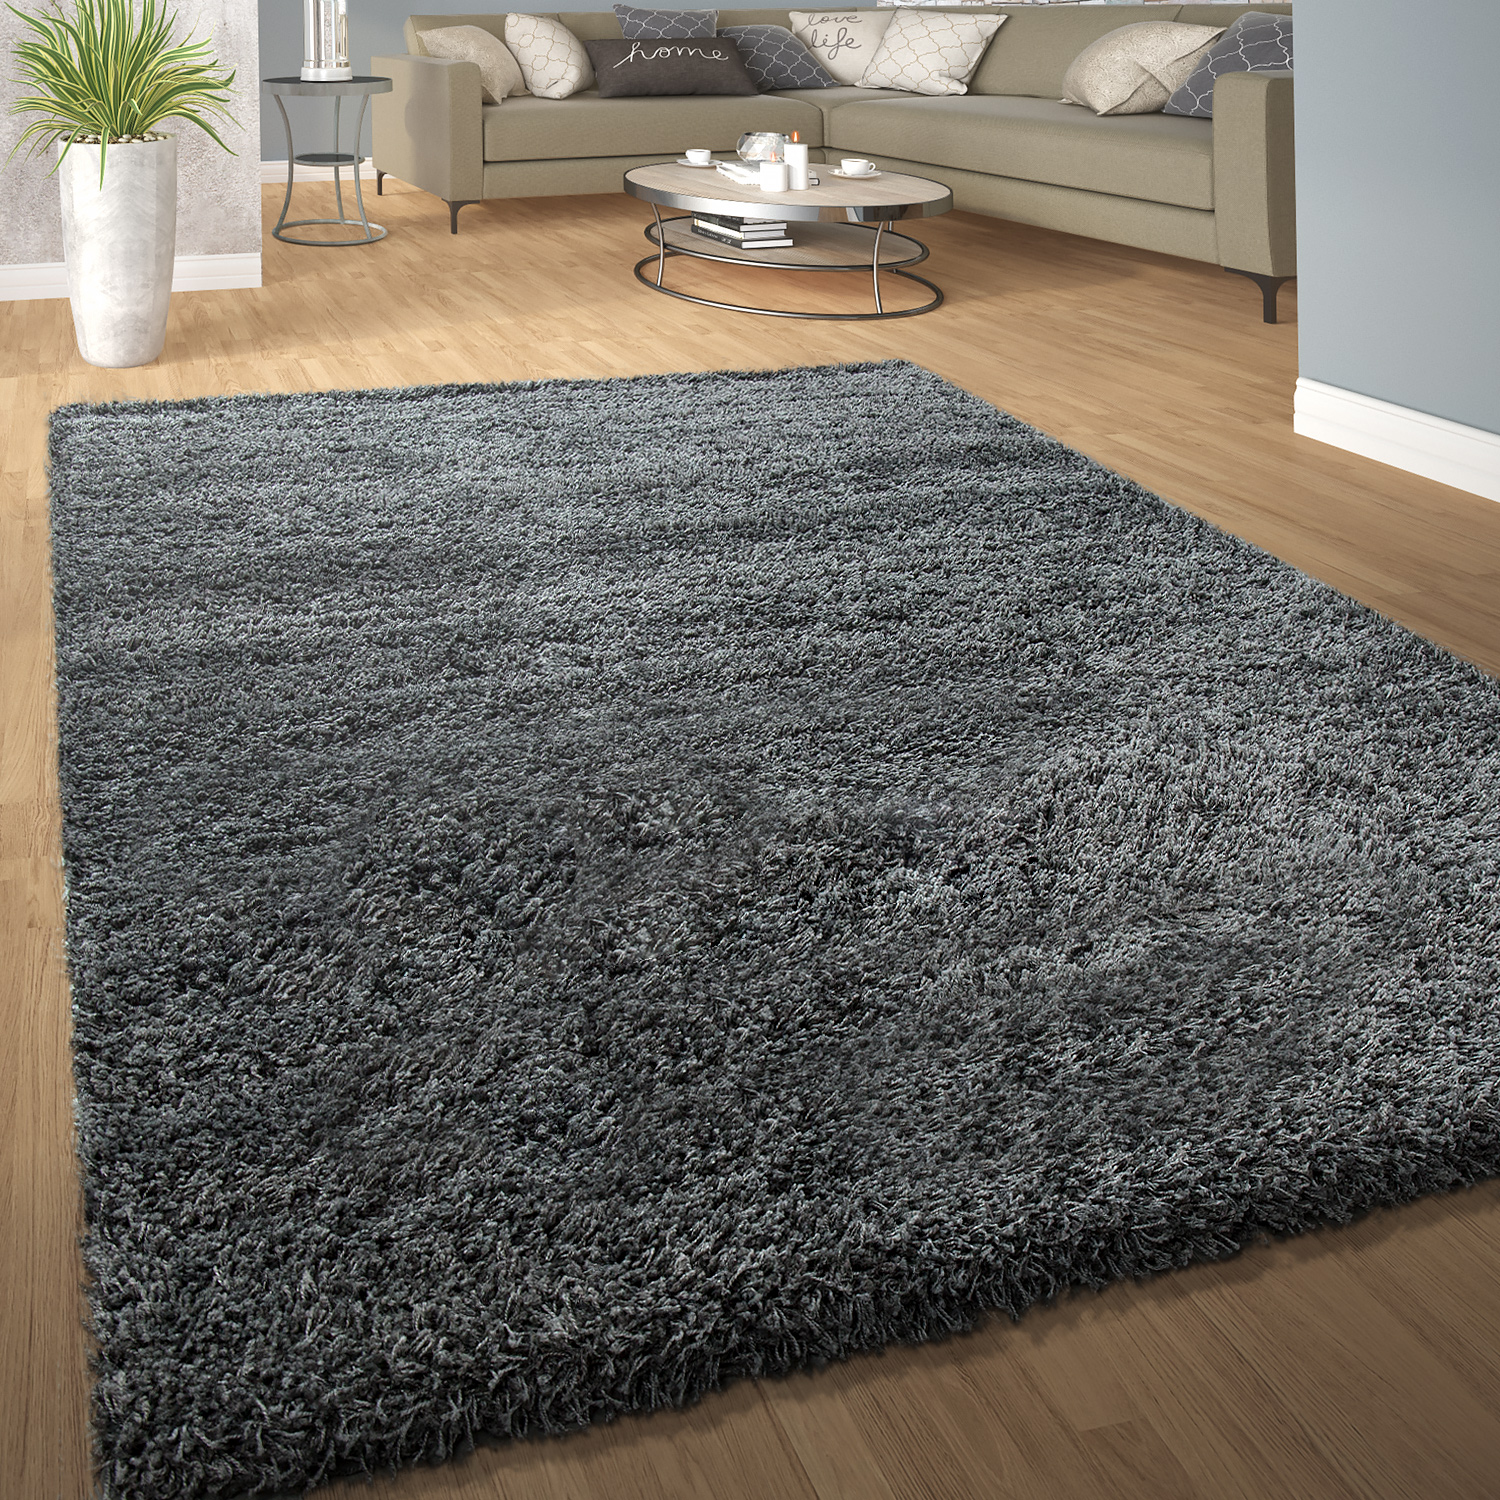 tapis shaggy poils hauts confortable doux poils longs. Black Bedroom Furniture Sets. Home Design Ideas